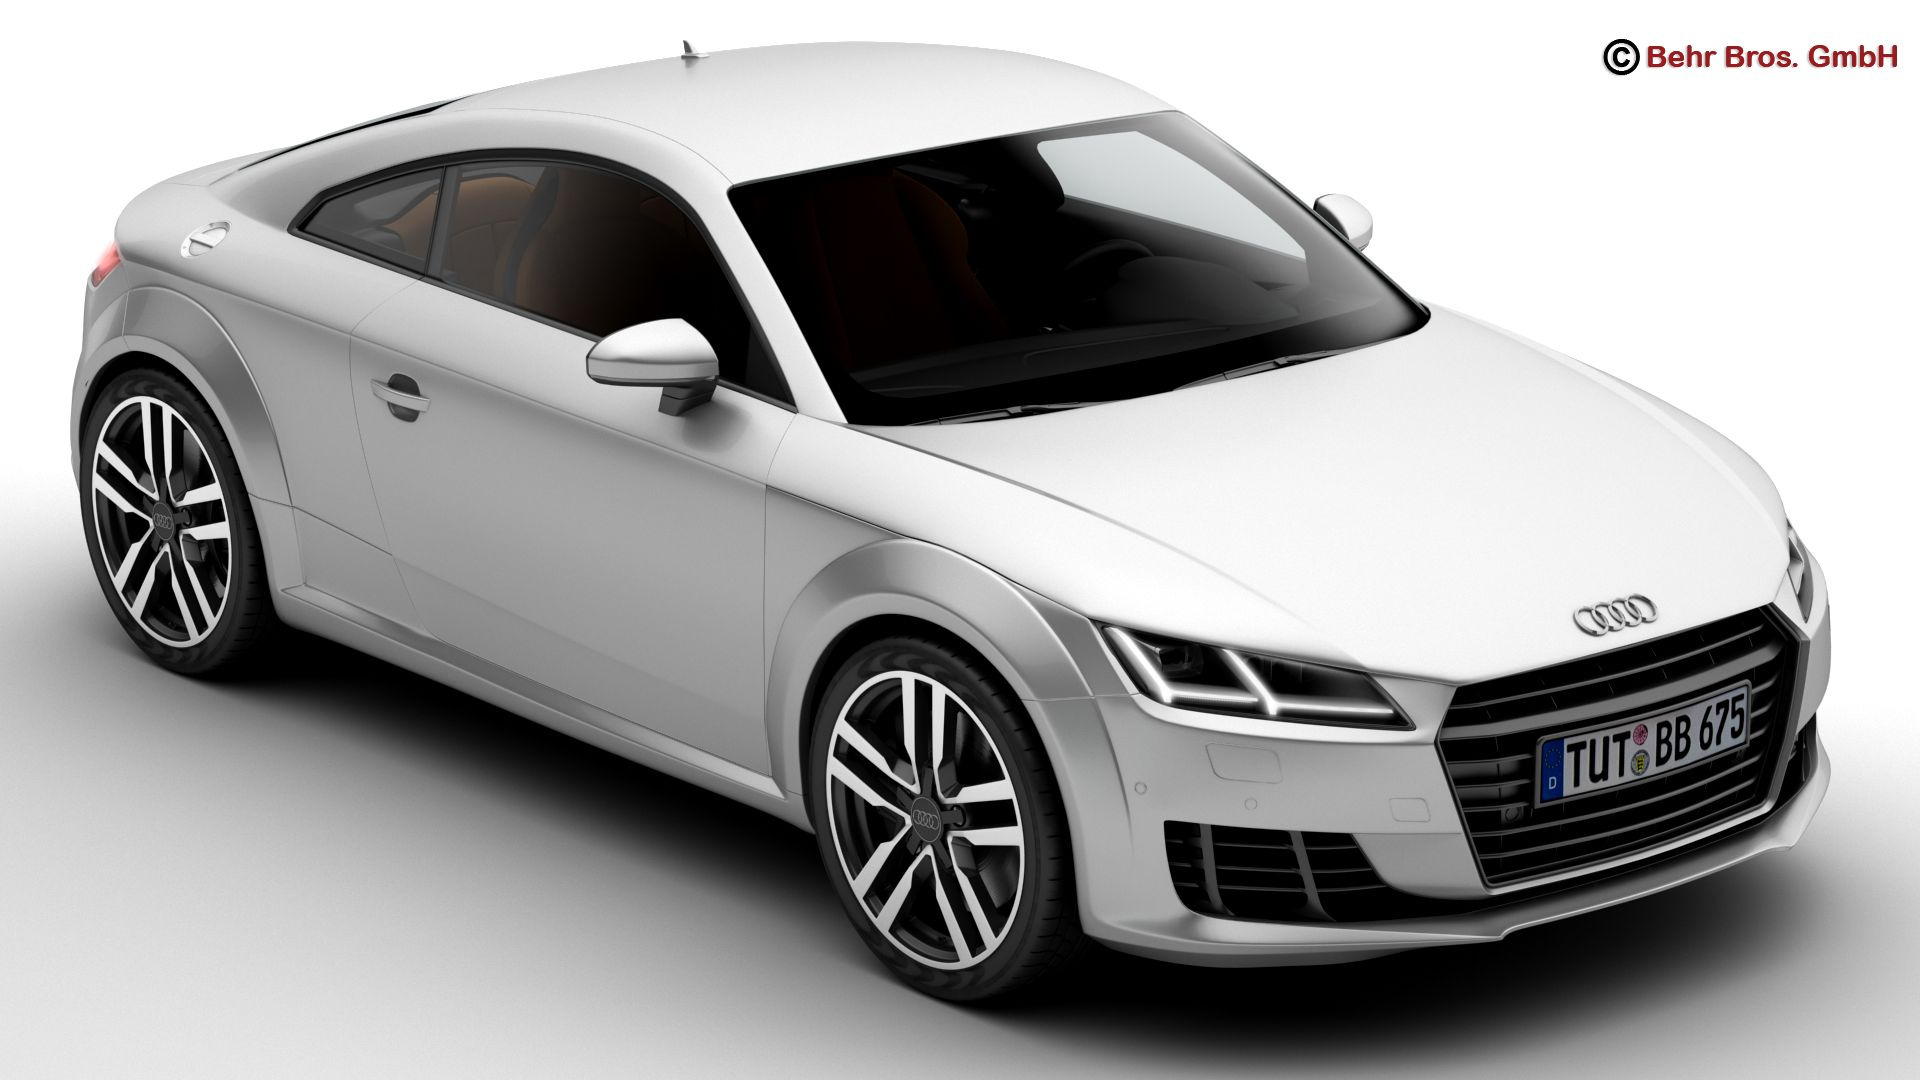 audi tt coupe 2015 3d model buy audi tt coupe 2015 3d model flatpyramid. Black Bedroom Furniture Sets. Home Design Ideas